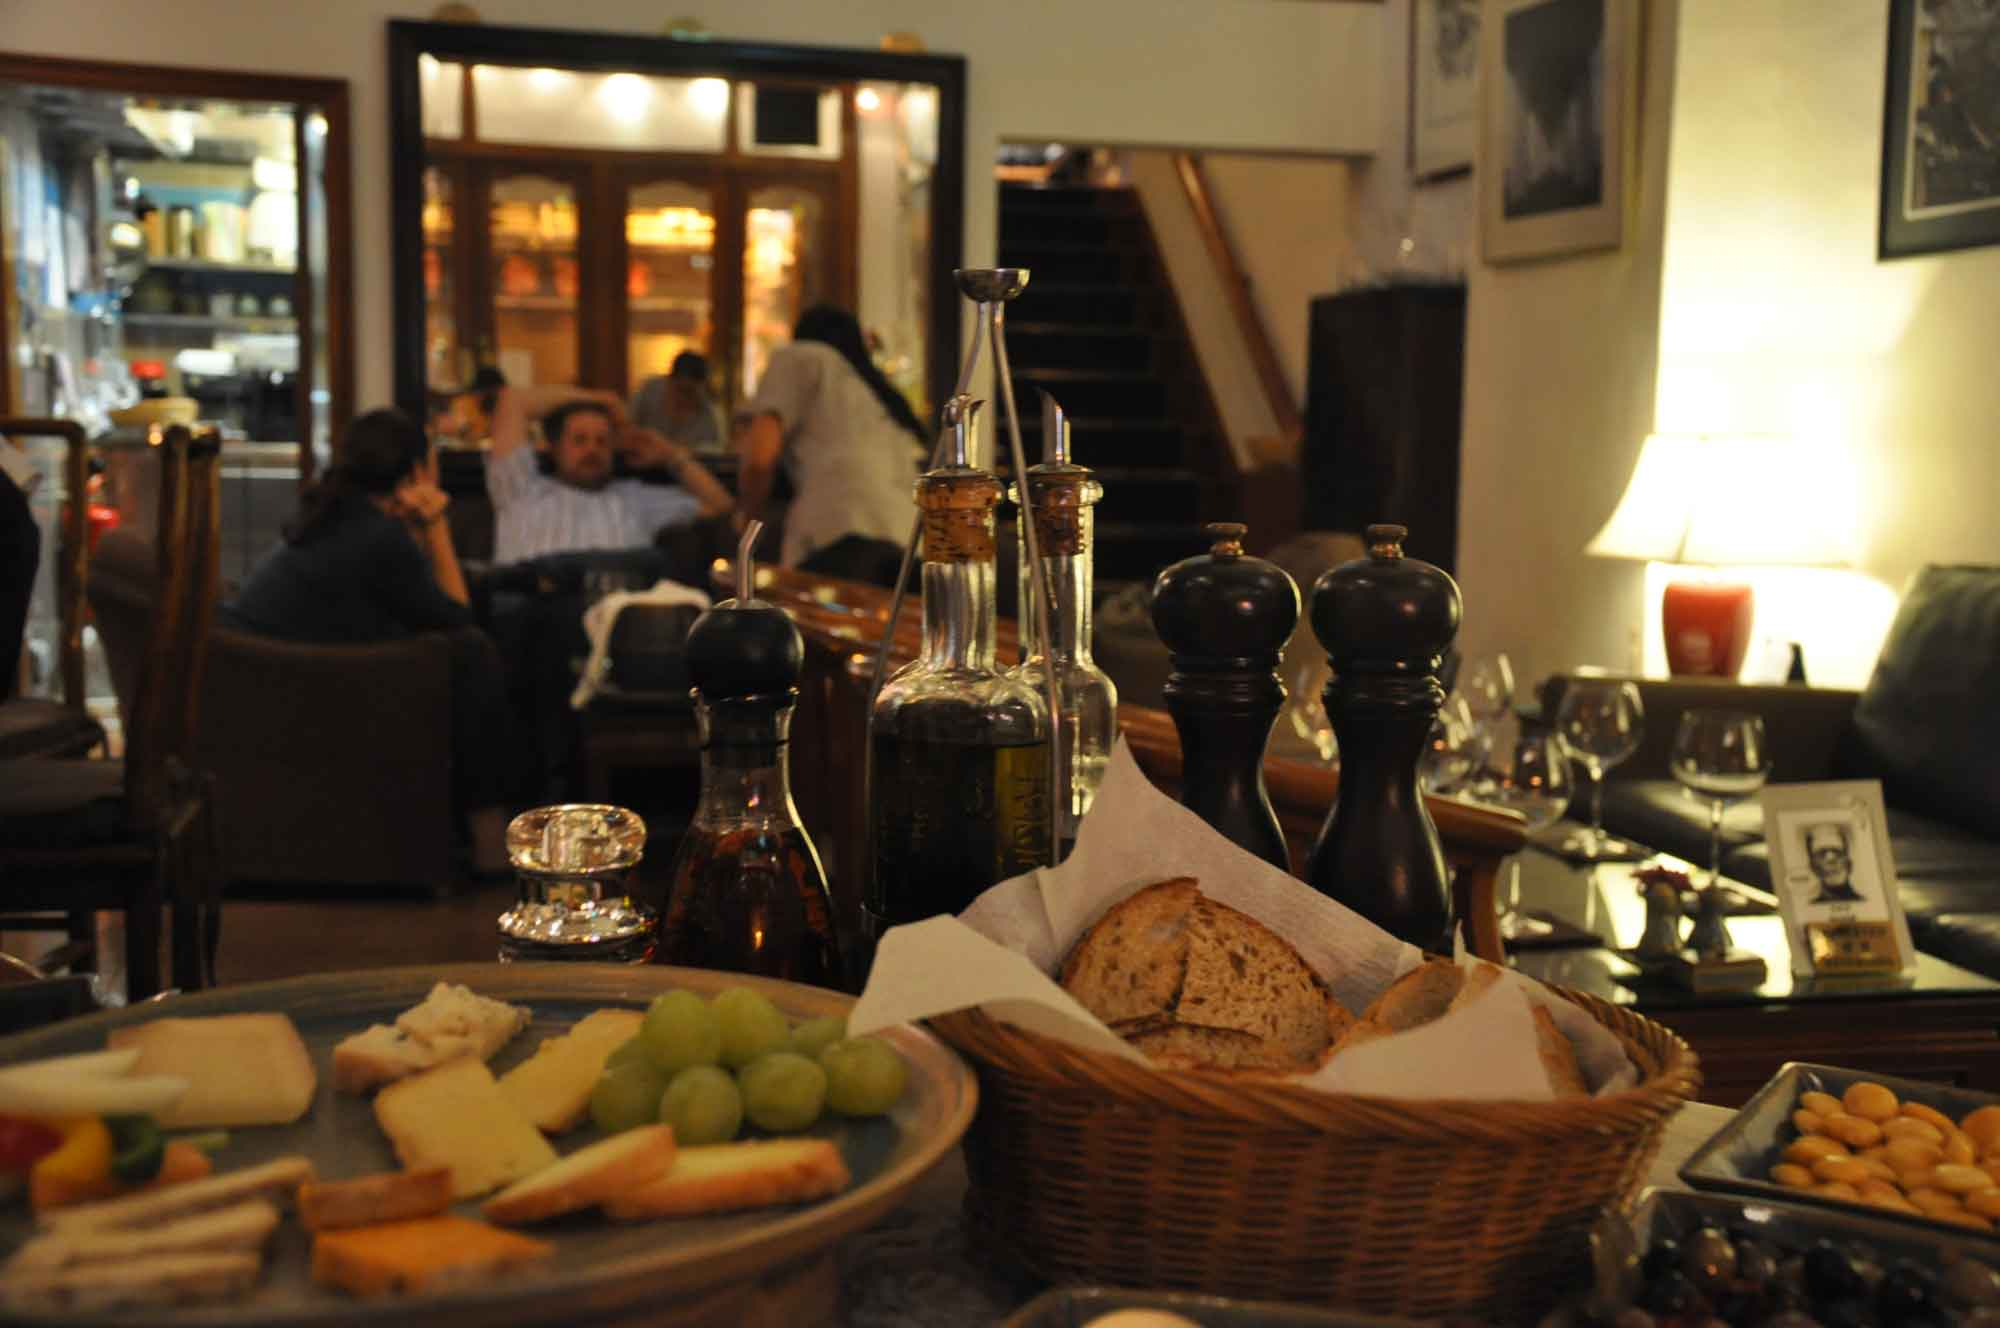 Macau Soul cheese board and warm interior